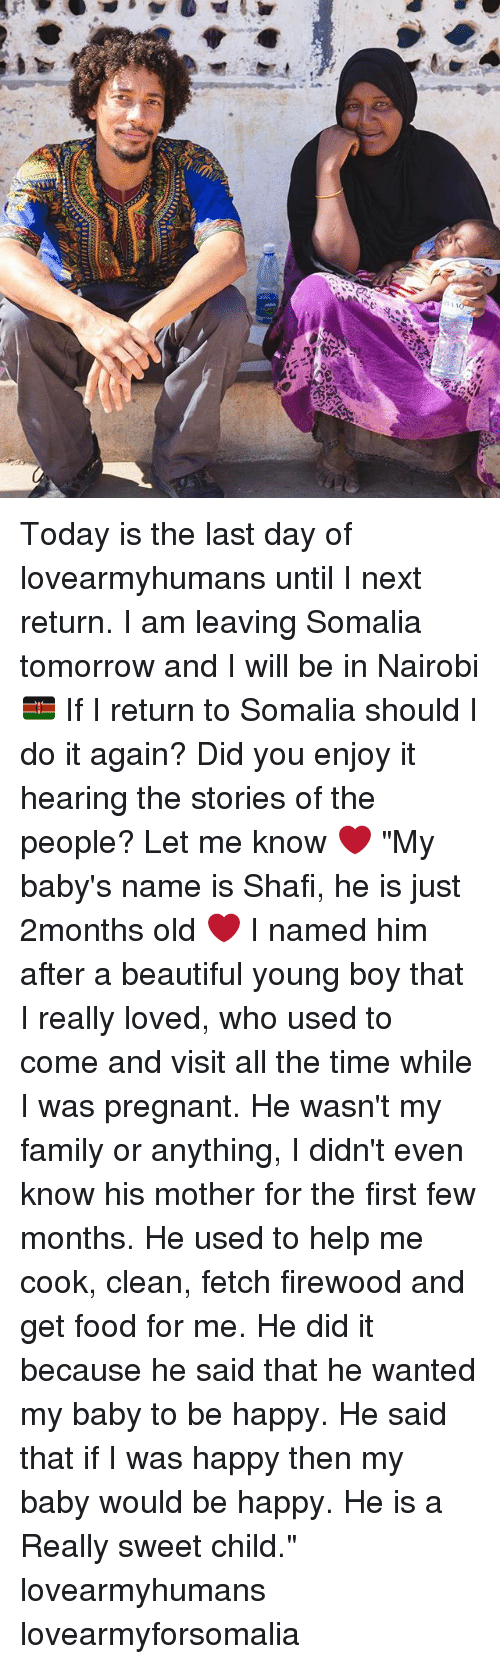 """Beautiful, Do It Again, and Family: k1r  12 Today is the last day of lovearmyhumans until I next return. I am leaving Somalia tomorrow and I will be in Nairobi 🇰🇪 If I return to Somalia should I do it again? Did you enjoy it hearing the stories of the people? Let me know ❤️ """"My baby's name is Shafi, he is just 2months old ❤️ I named him after a beautiful young boy that I really loved, who used to come and visit all the time while I was pregnant. He wasn't my family or anything, I didn't even know his mother for the first few months. He used to help me cook, clean, fetch firewood and get food for me. He did it because he said that he wanted my baby to be happy. He said that if I was happy then my baby would be happy. He is a Really sweet child."""" lovearmyhumans lovearmyforsomalia"""